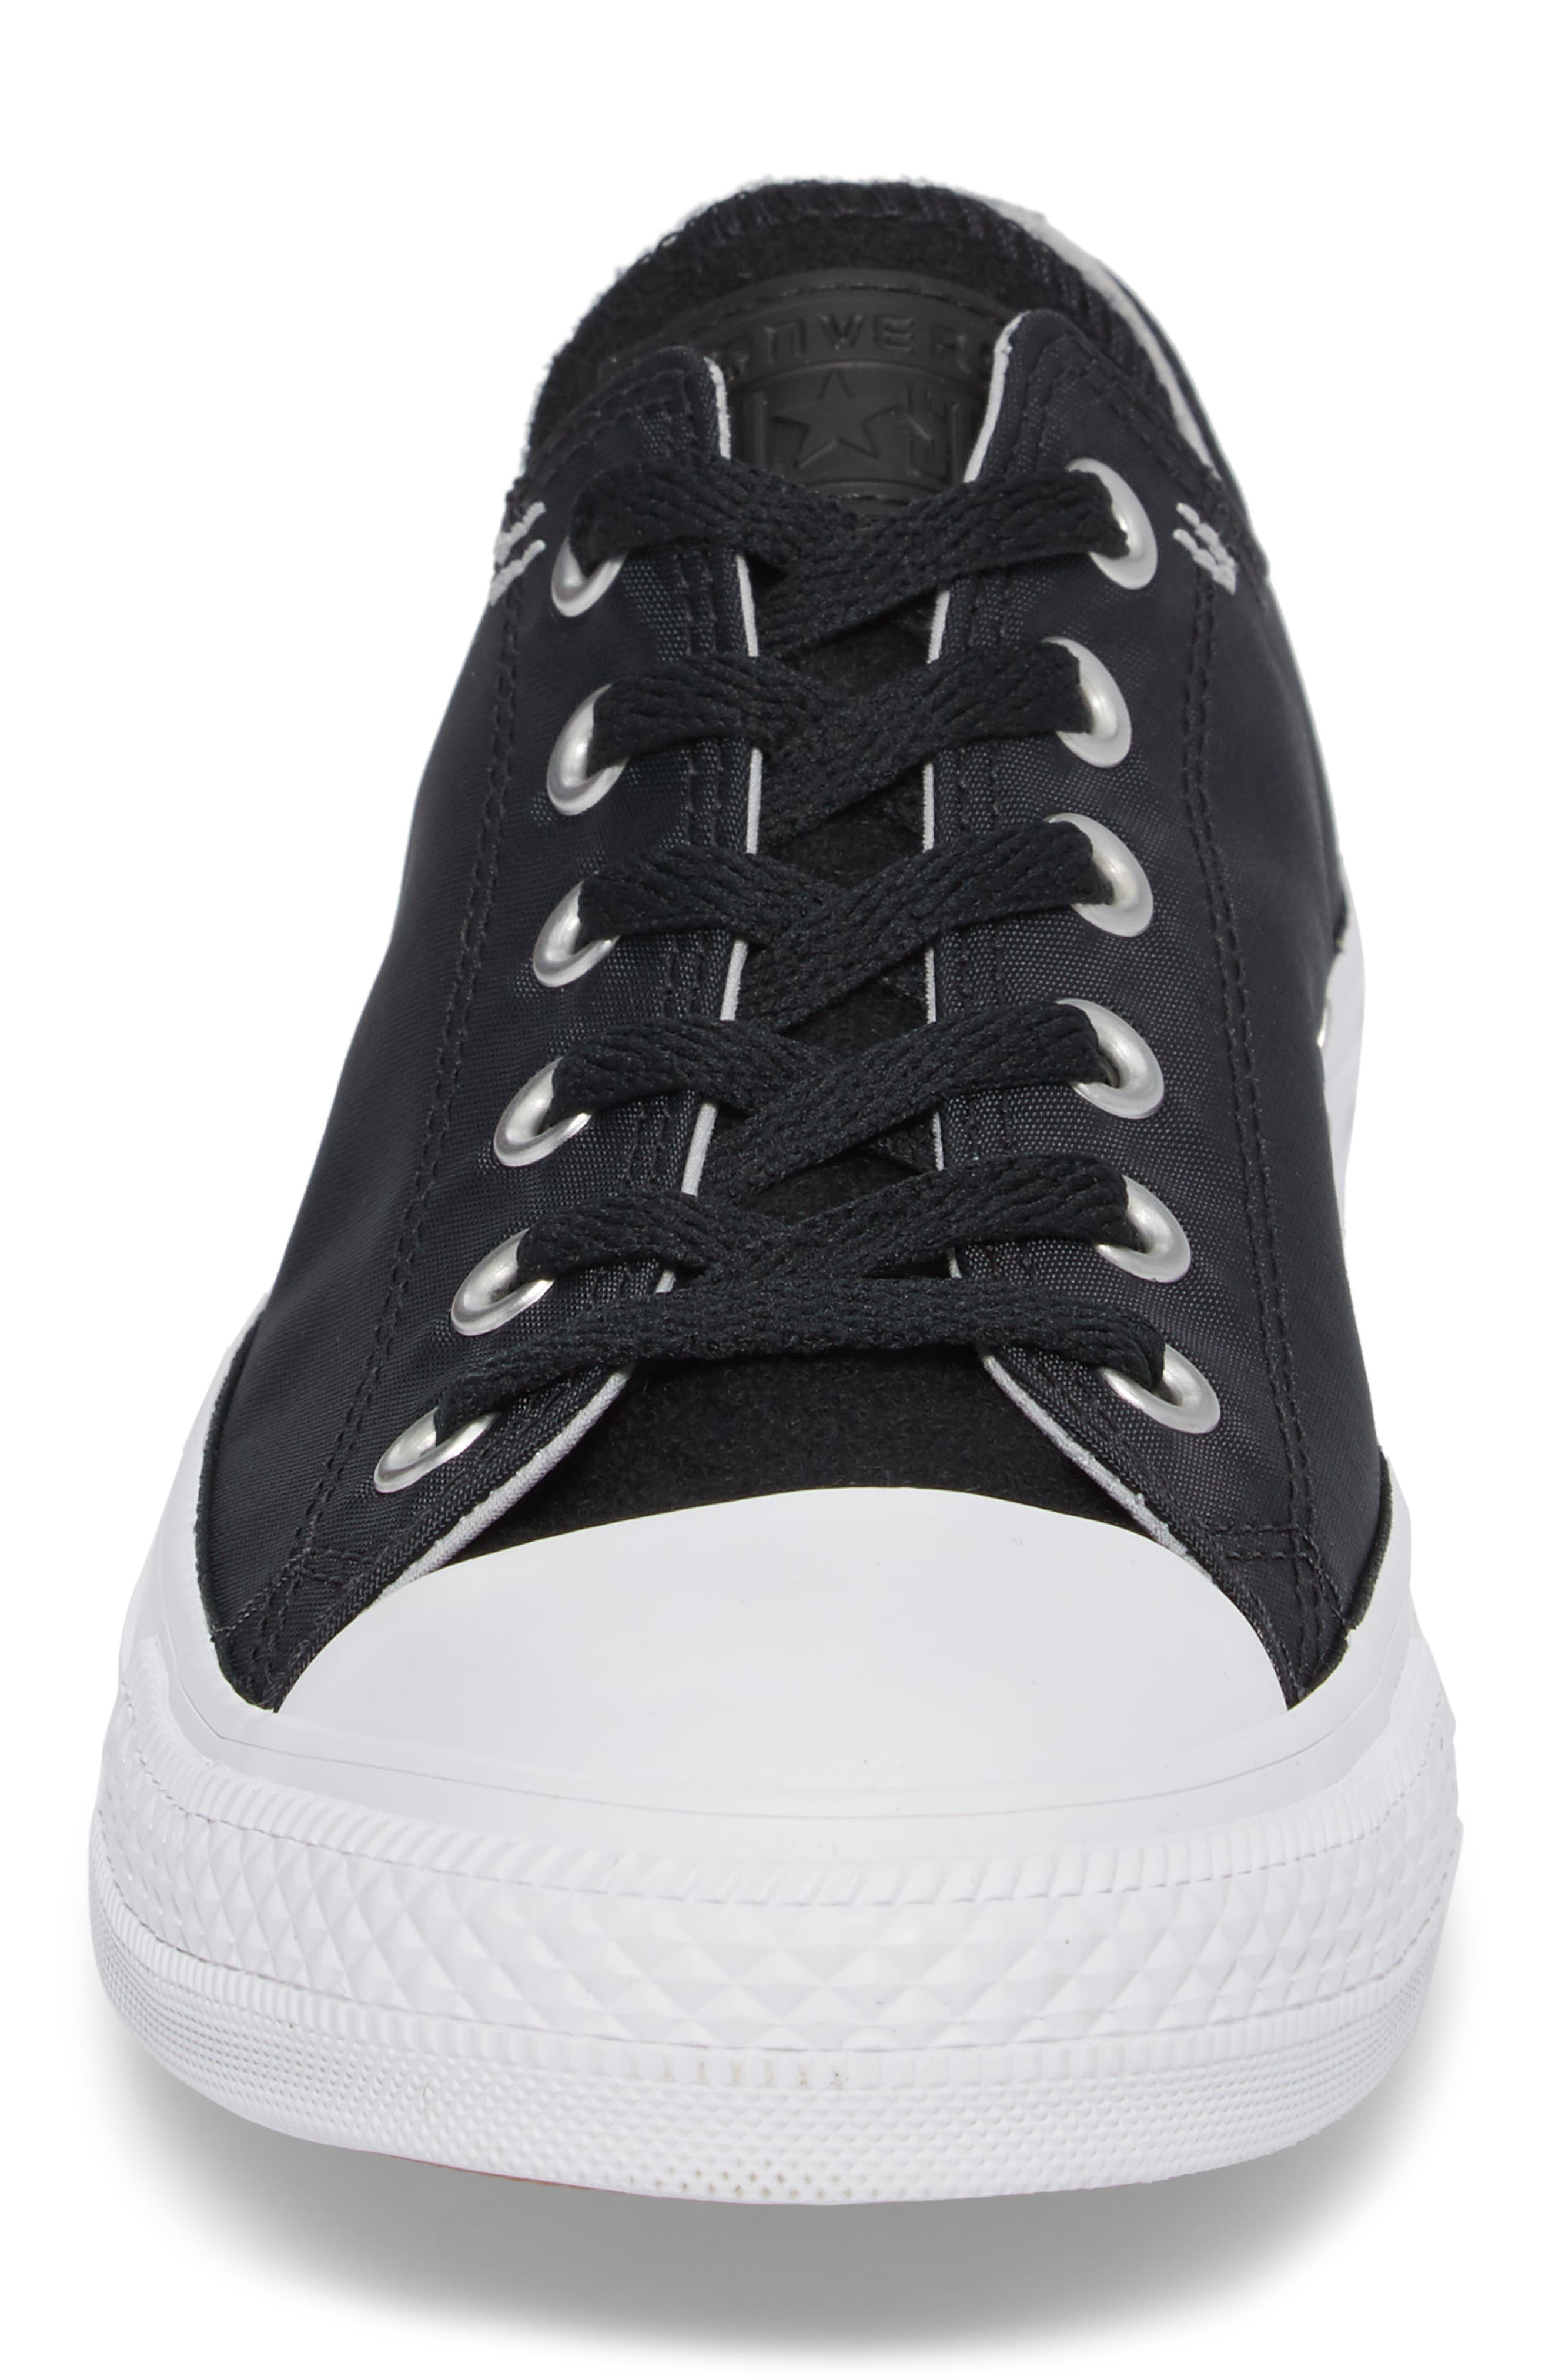 All Star<sup>®</sup> OX Low Top Sneaker,                             Alternate thumbnail 4, color,                             001